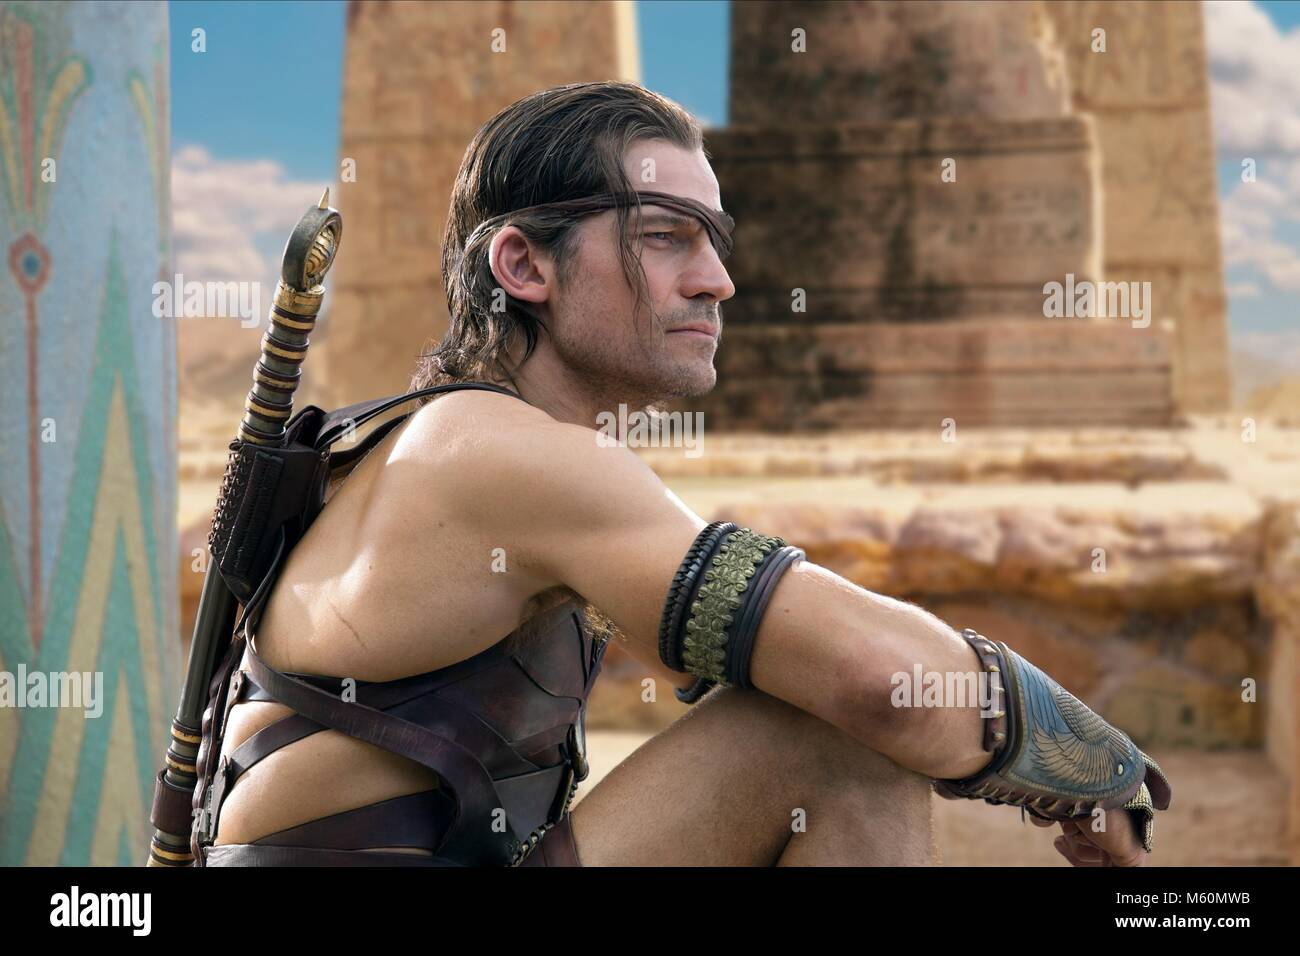 NIKOLAJ COSTER-WALDAU GODS OF EGYPT (2016) - Stock Image